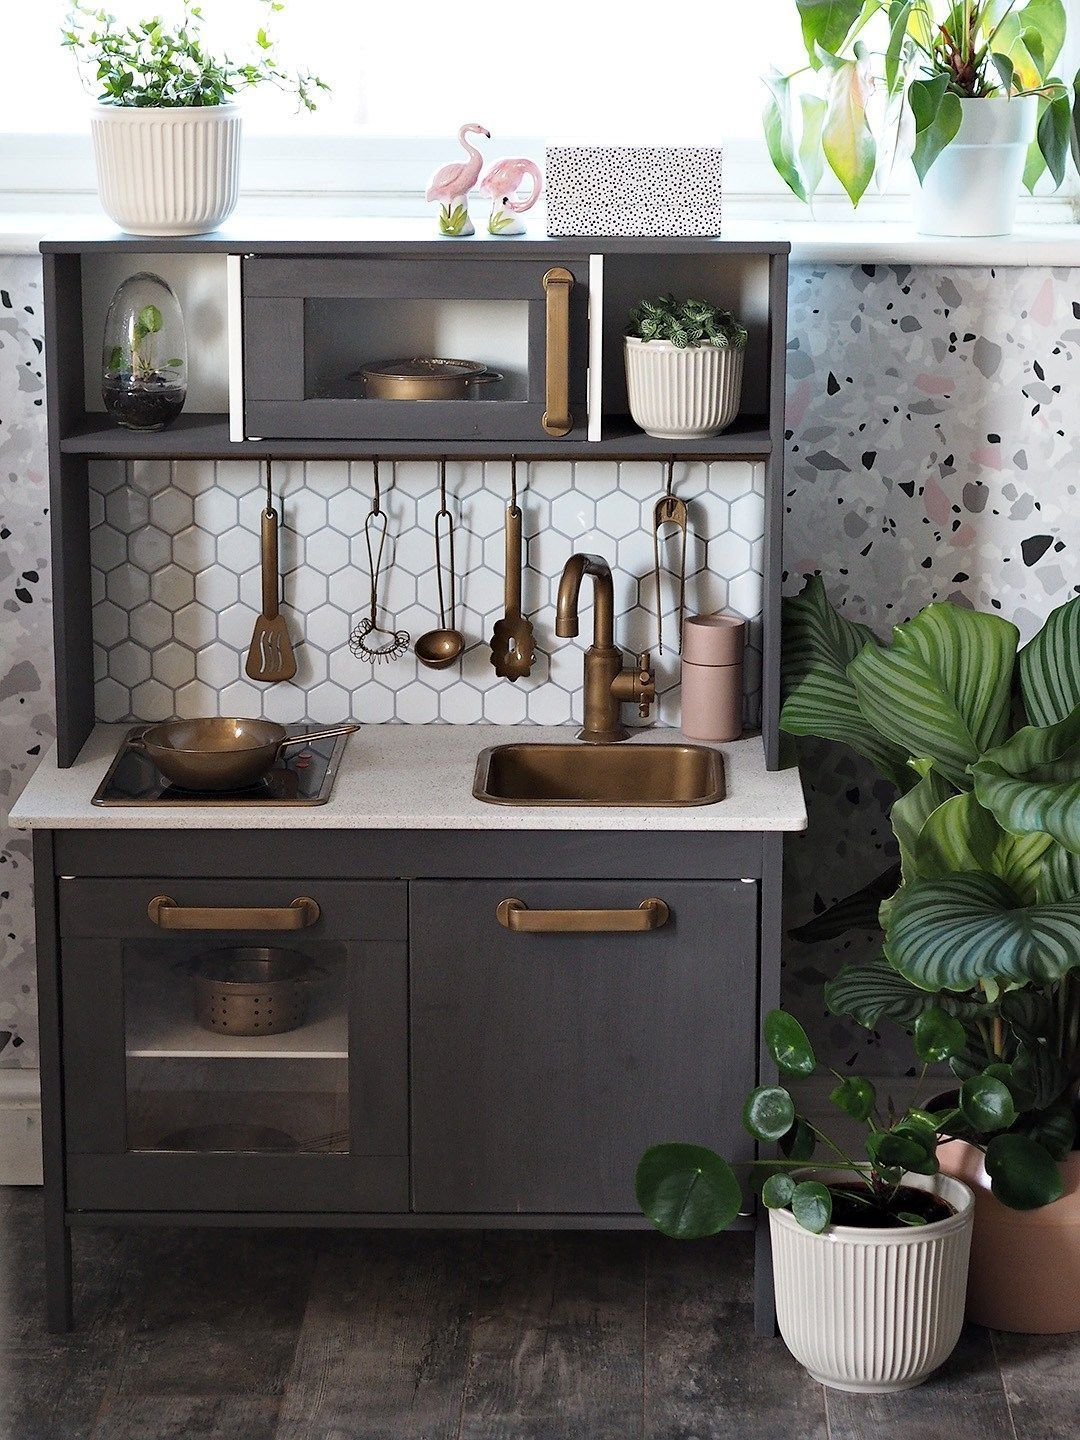 46 best ikea kitchen design ideas 2019 casa house small - Ideas cocina ikea ...